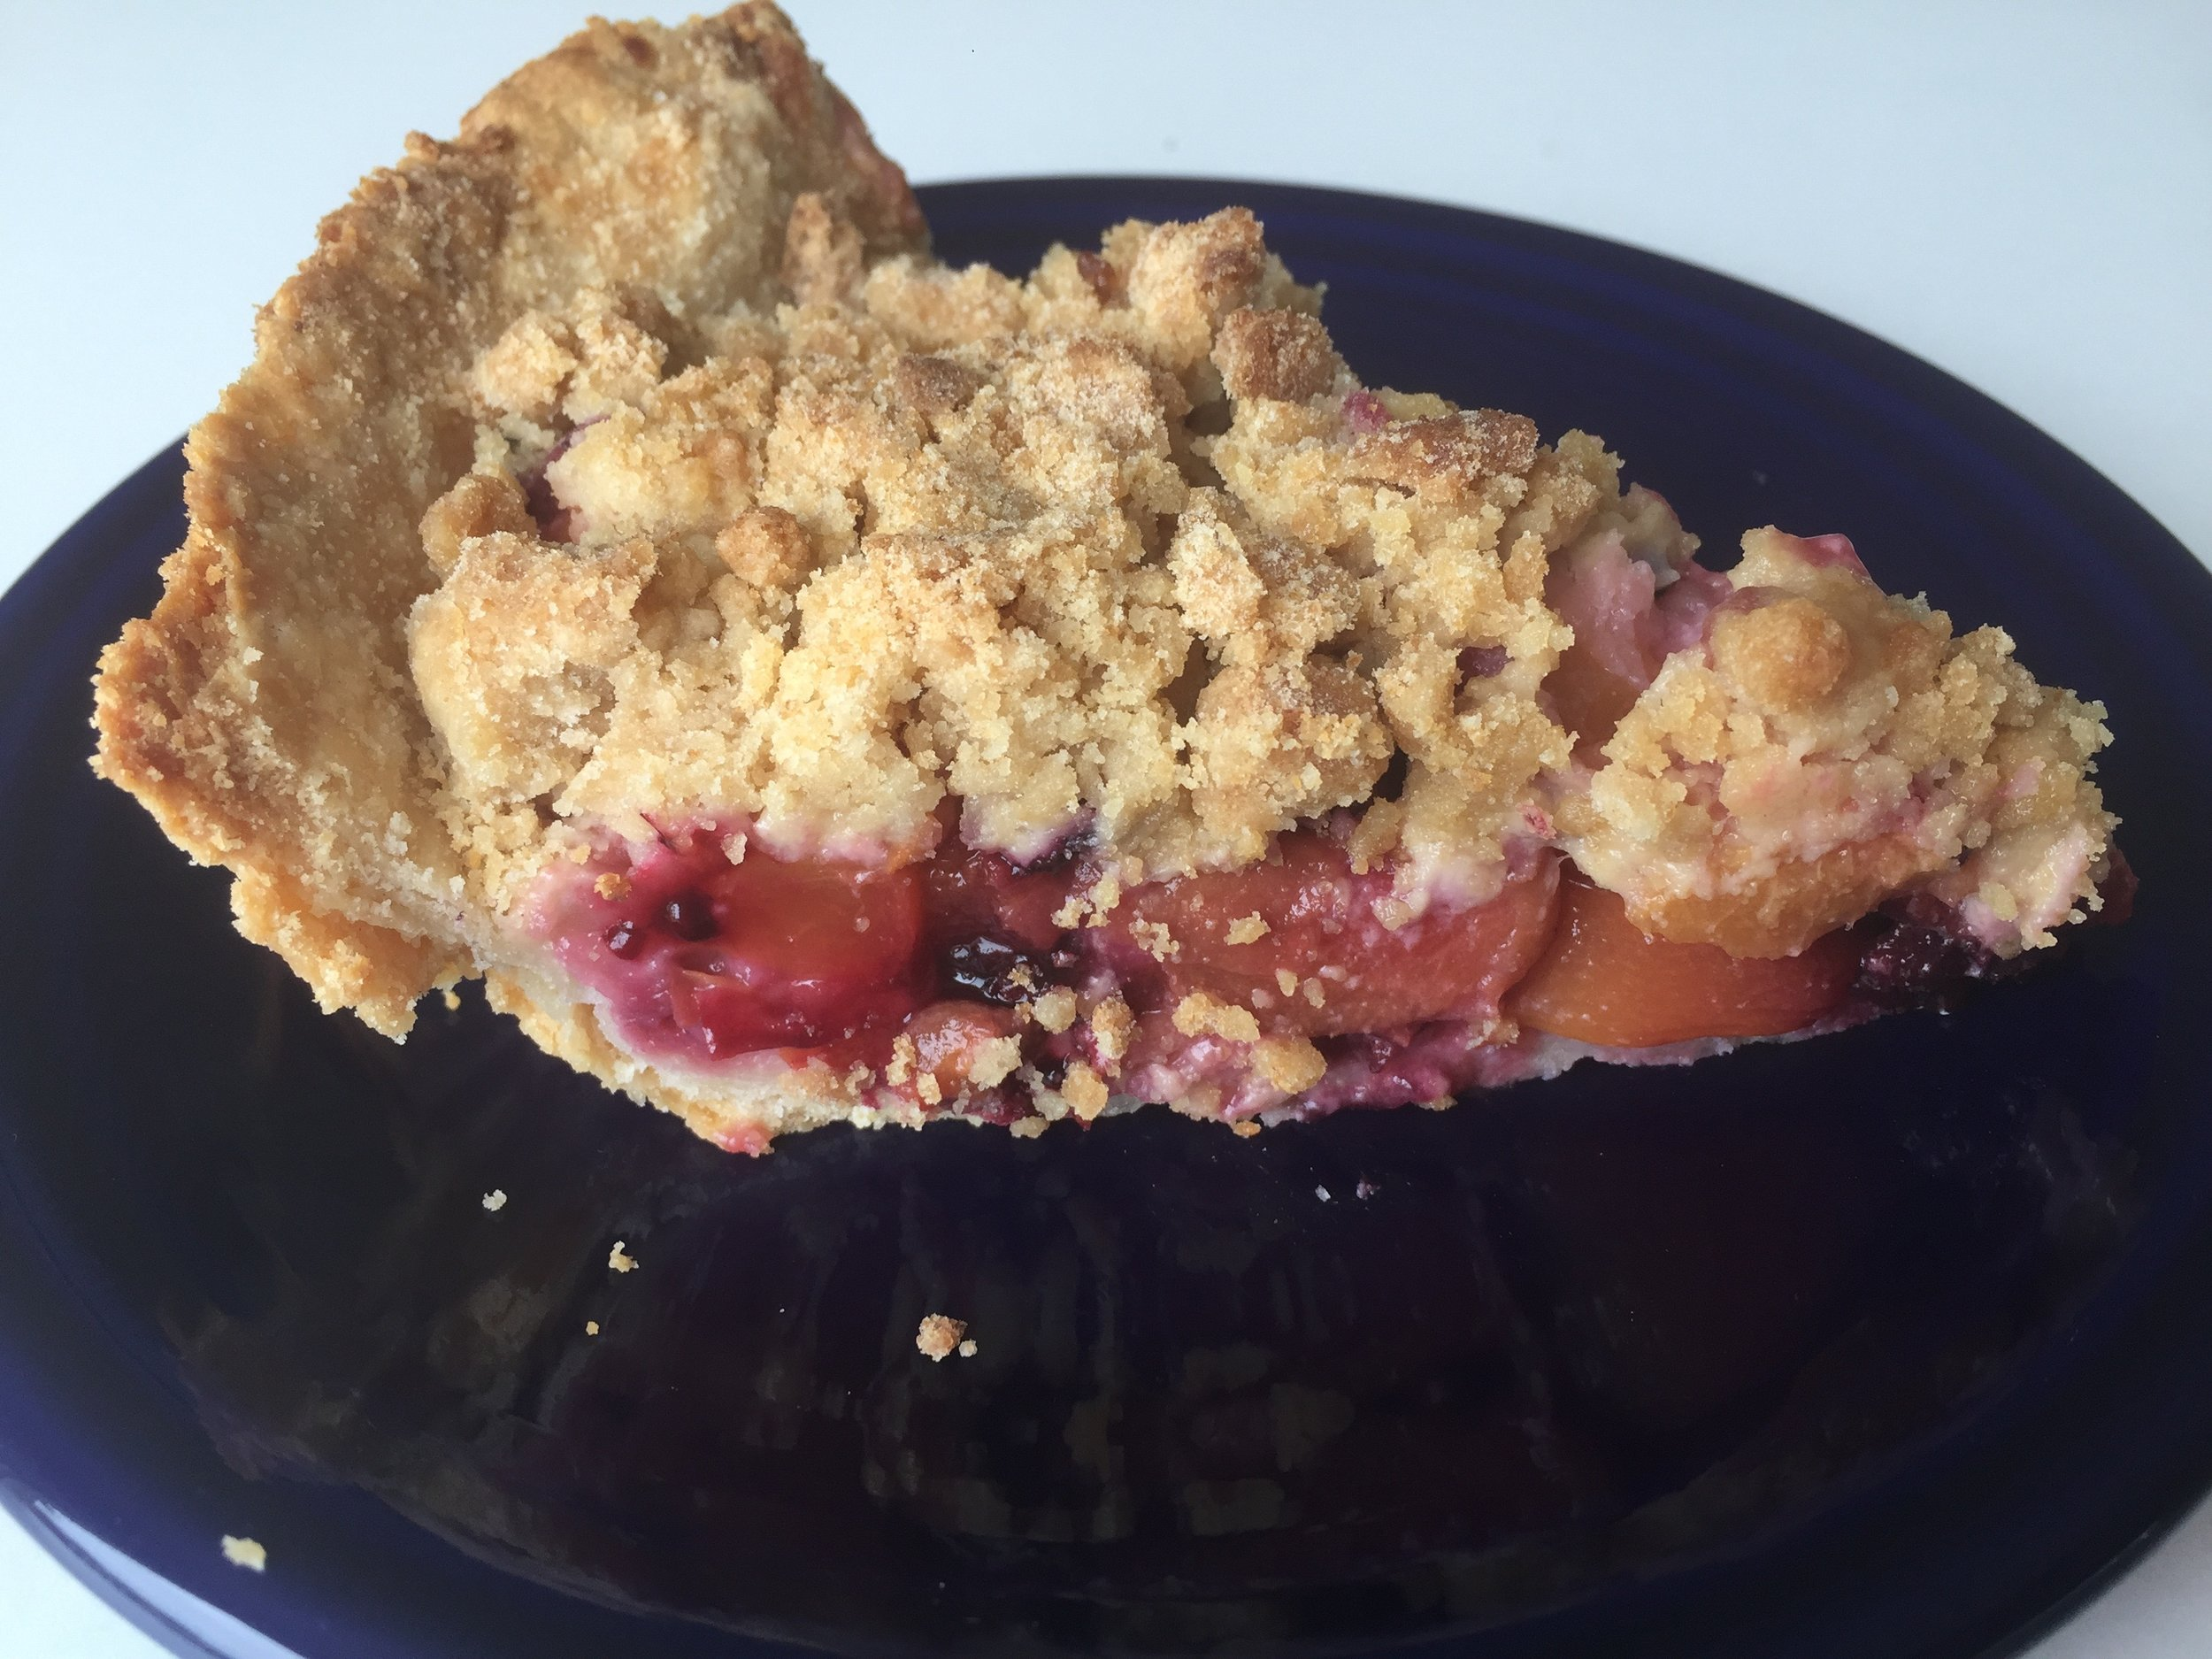 Berry and Stone Fruit Pie with peaches, cherries and black raspberries.